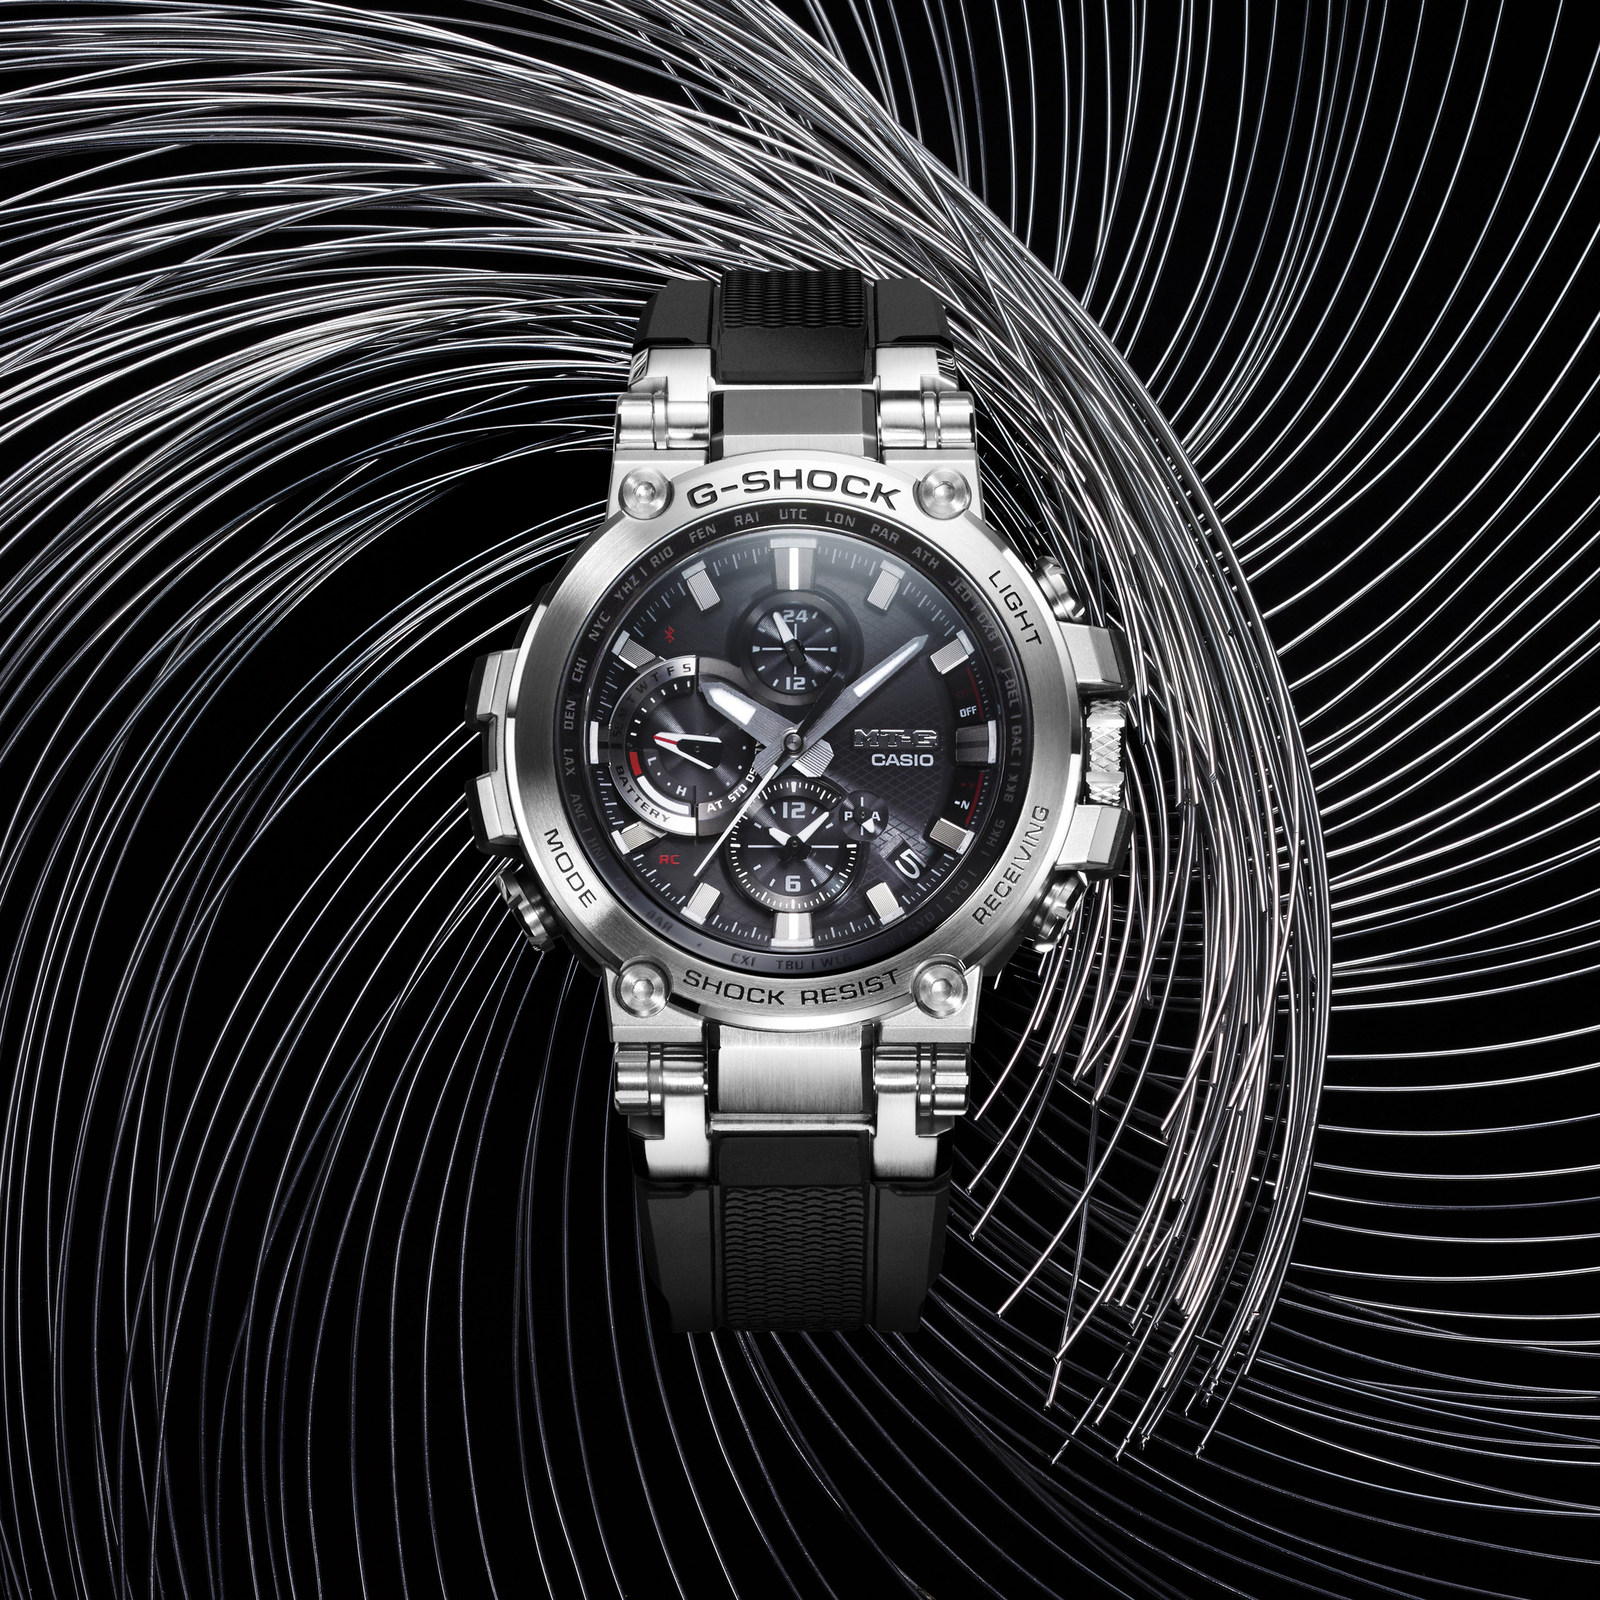 [Official] G-Shock MTG-B1000 — Luxury Line Connected watch